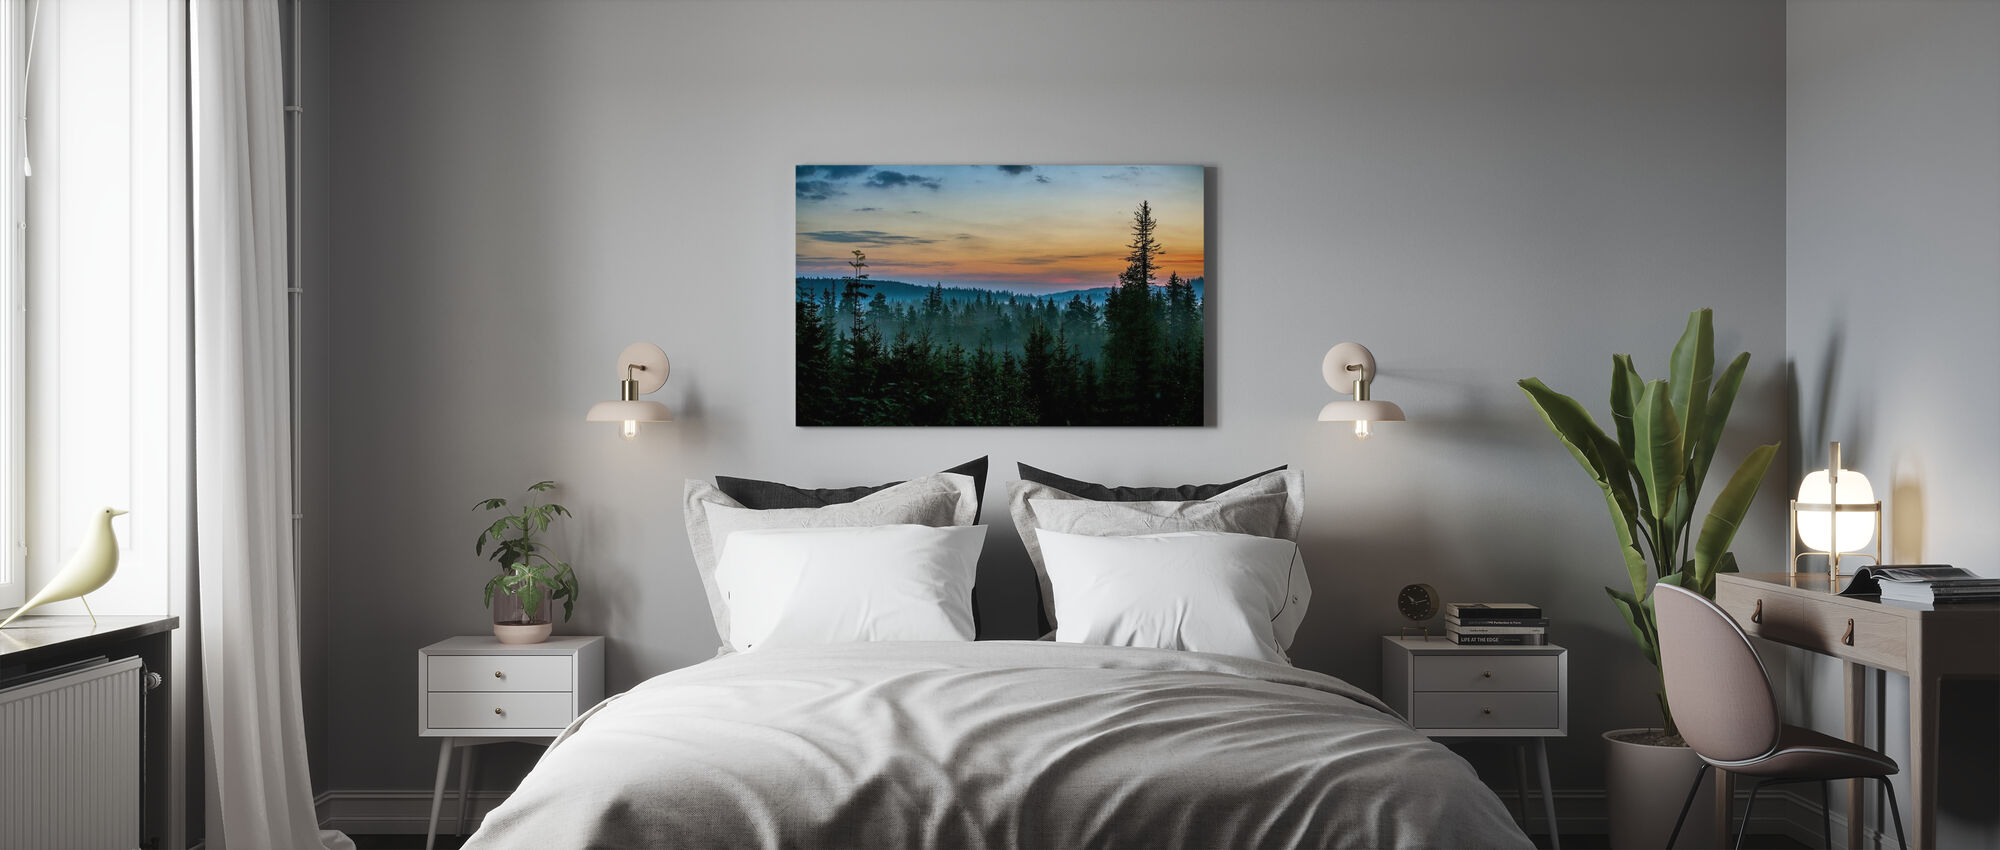 Early Morning in Fir Forest - Canvas print - Bedroom